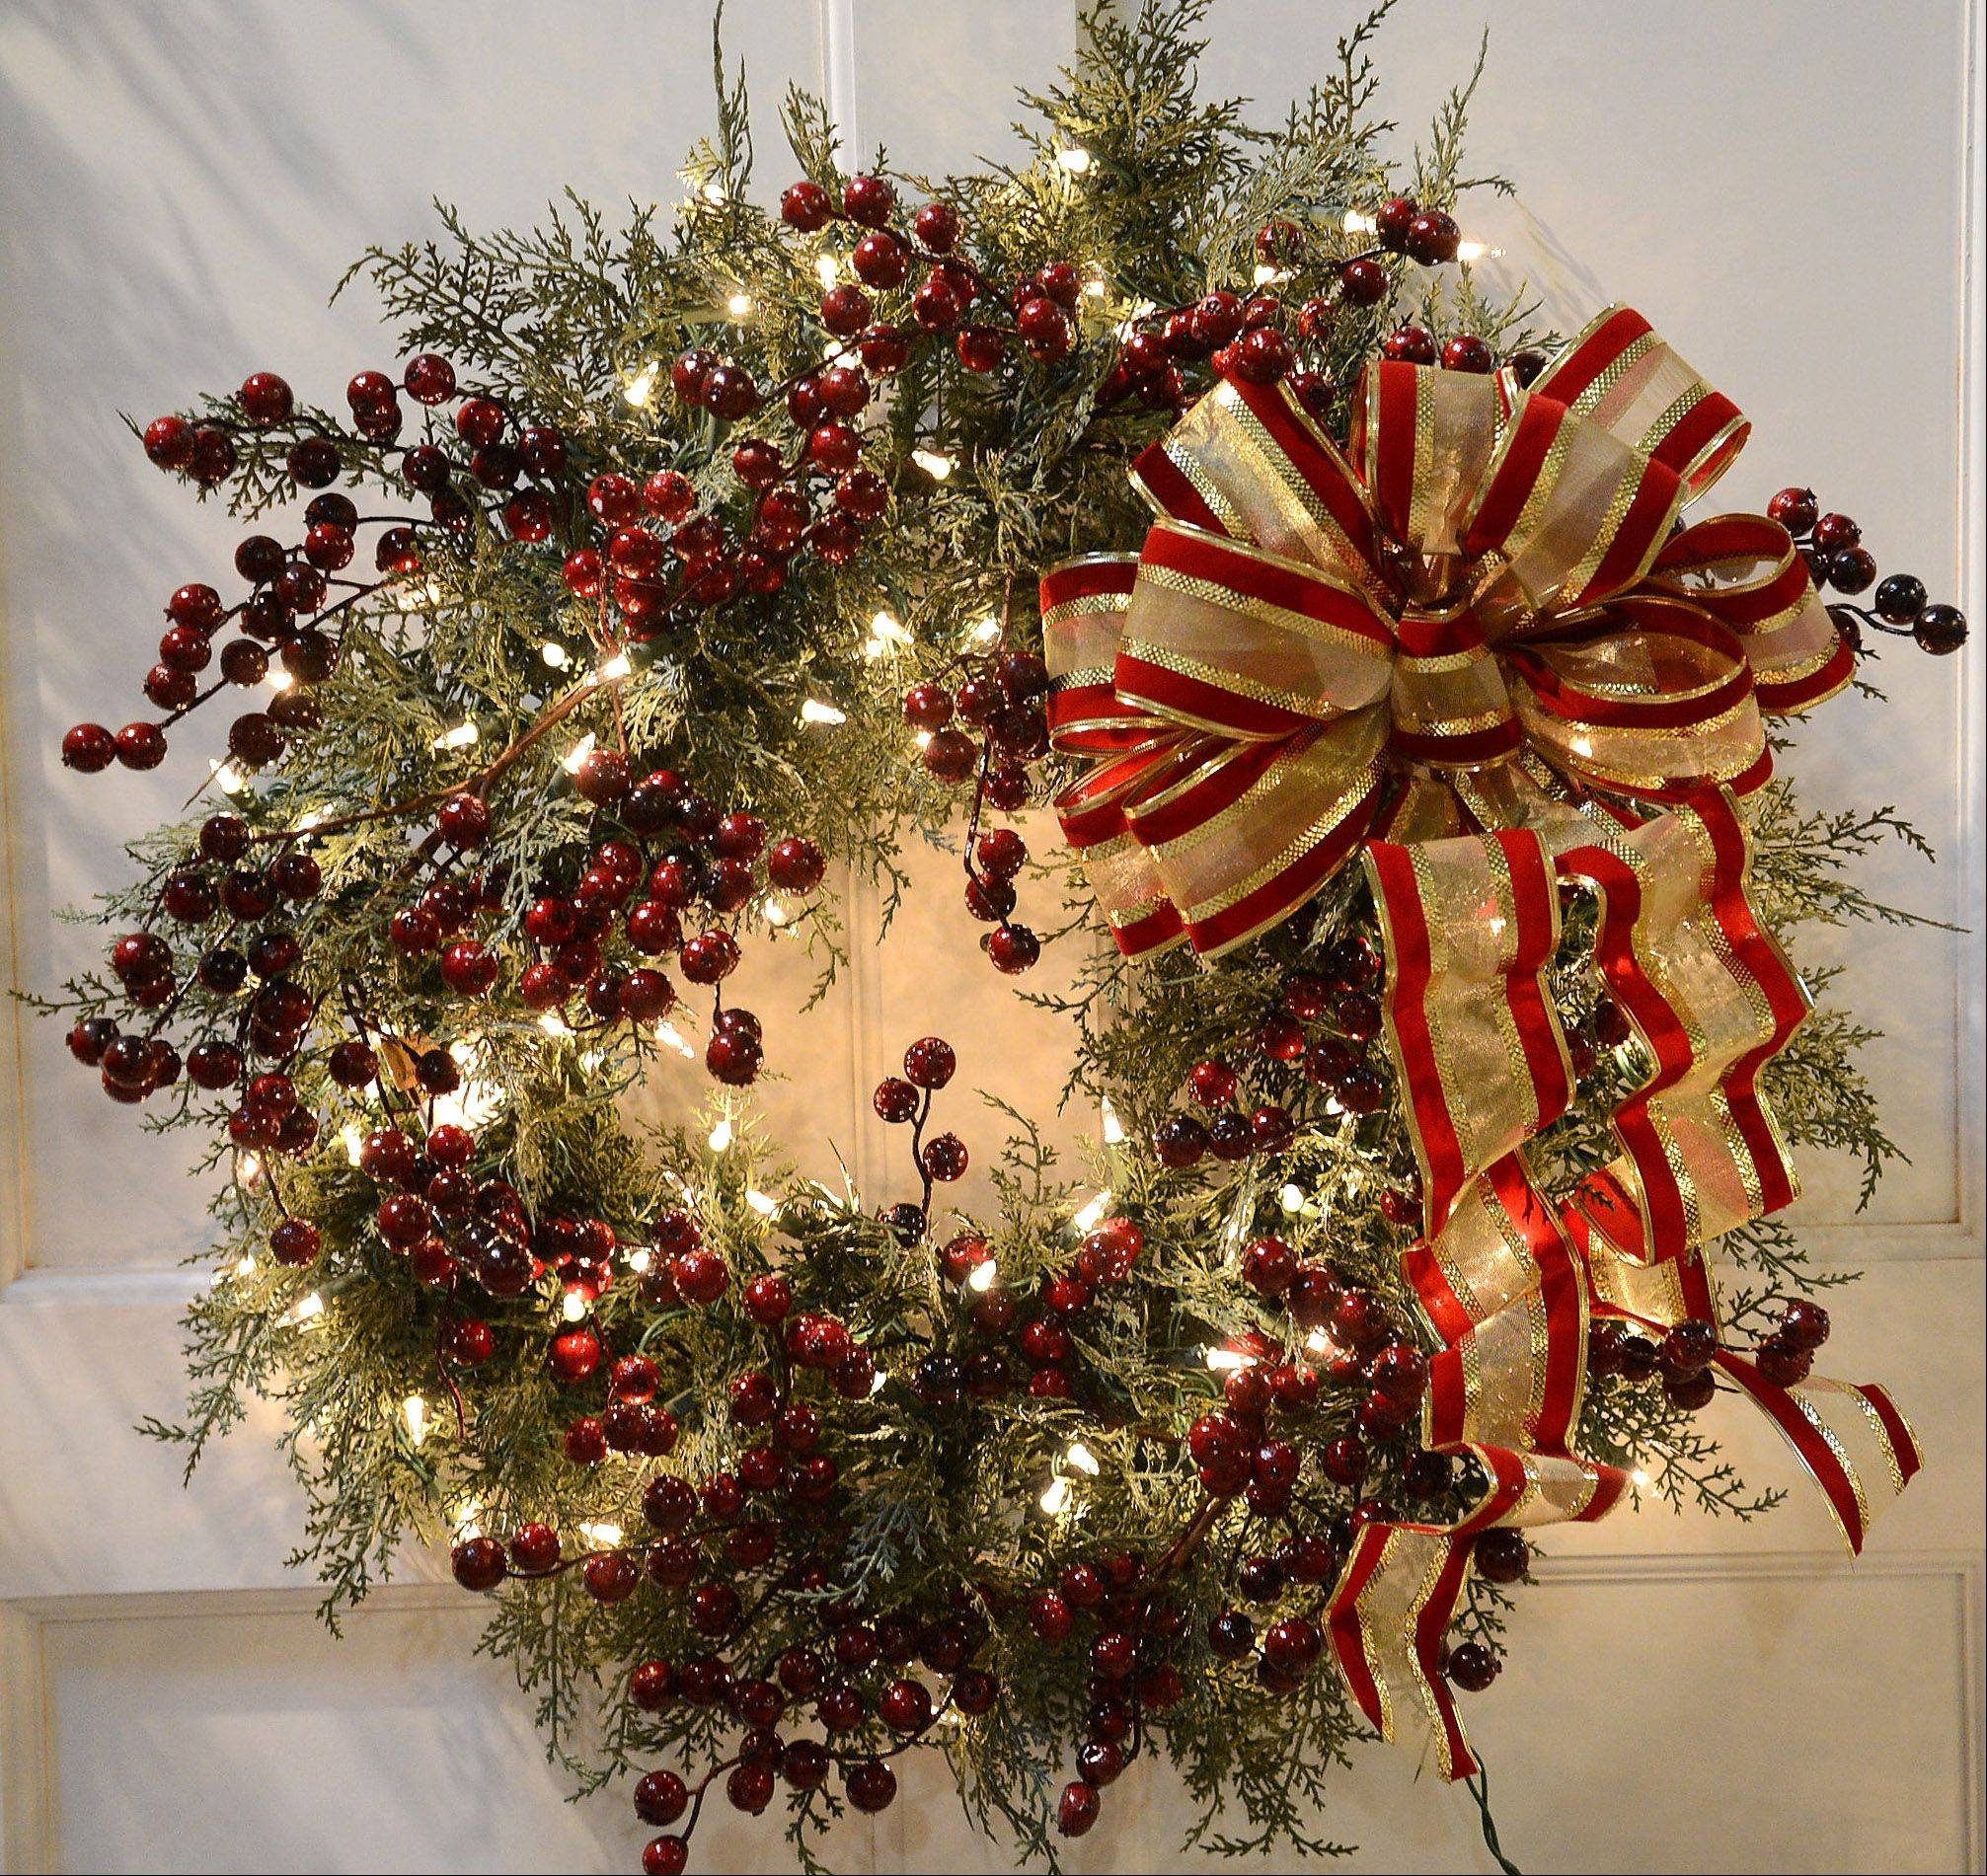 Treetime Christmas Creations sells artificial trees and holiday decorations, including this cedar wreath with weather resistant bow and berries.